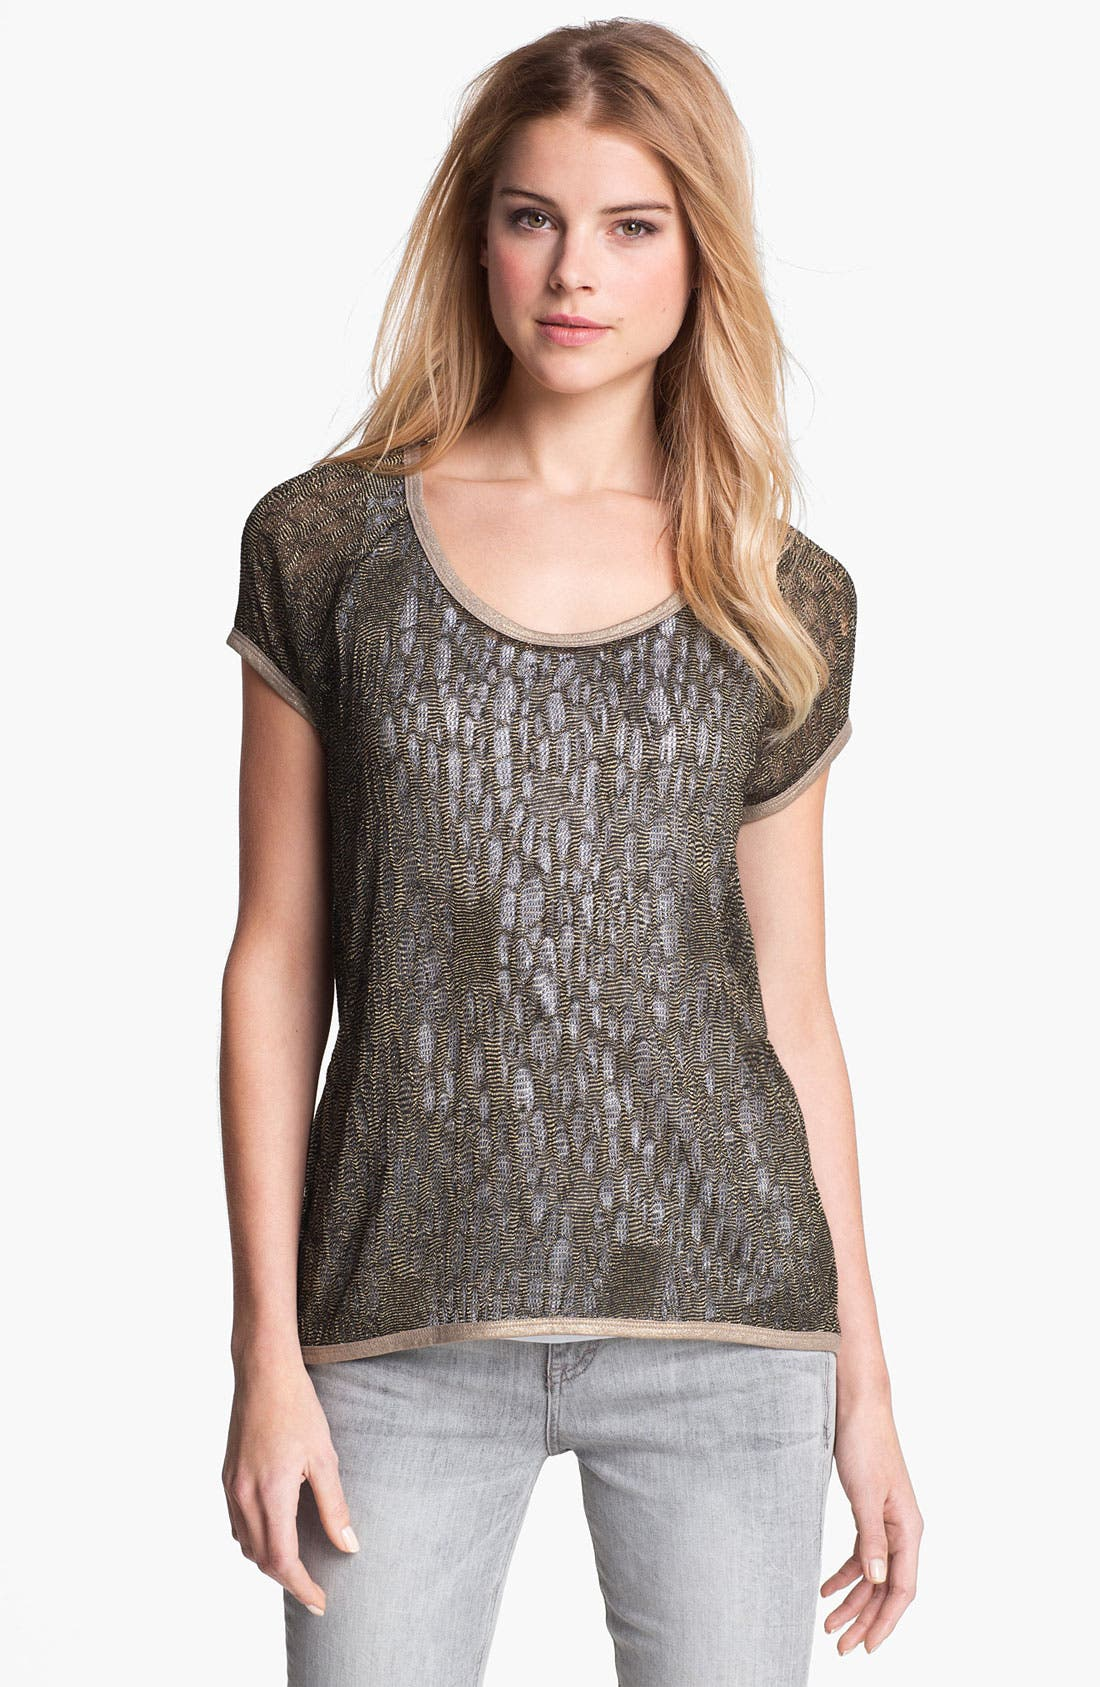 Alternate Image 1 Selected - Two by Vince Camuto Metallic Open Knit Tee